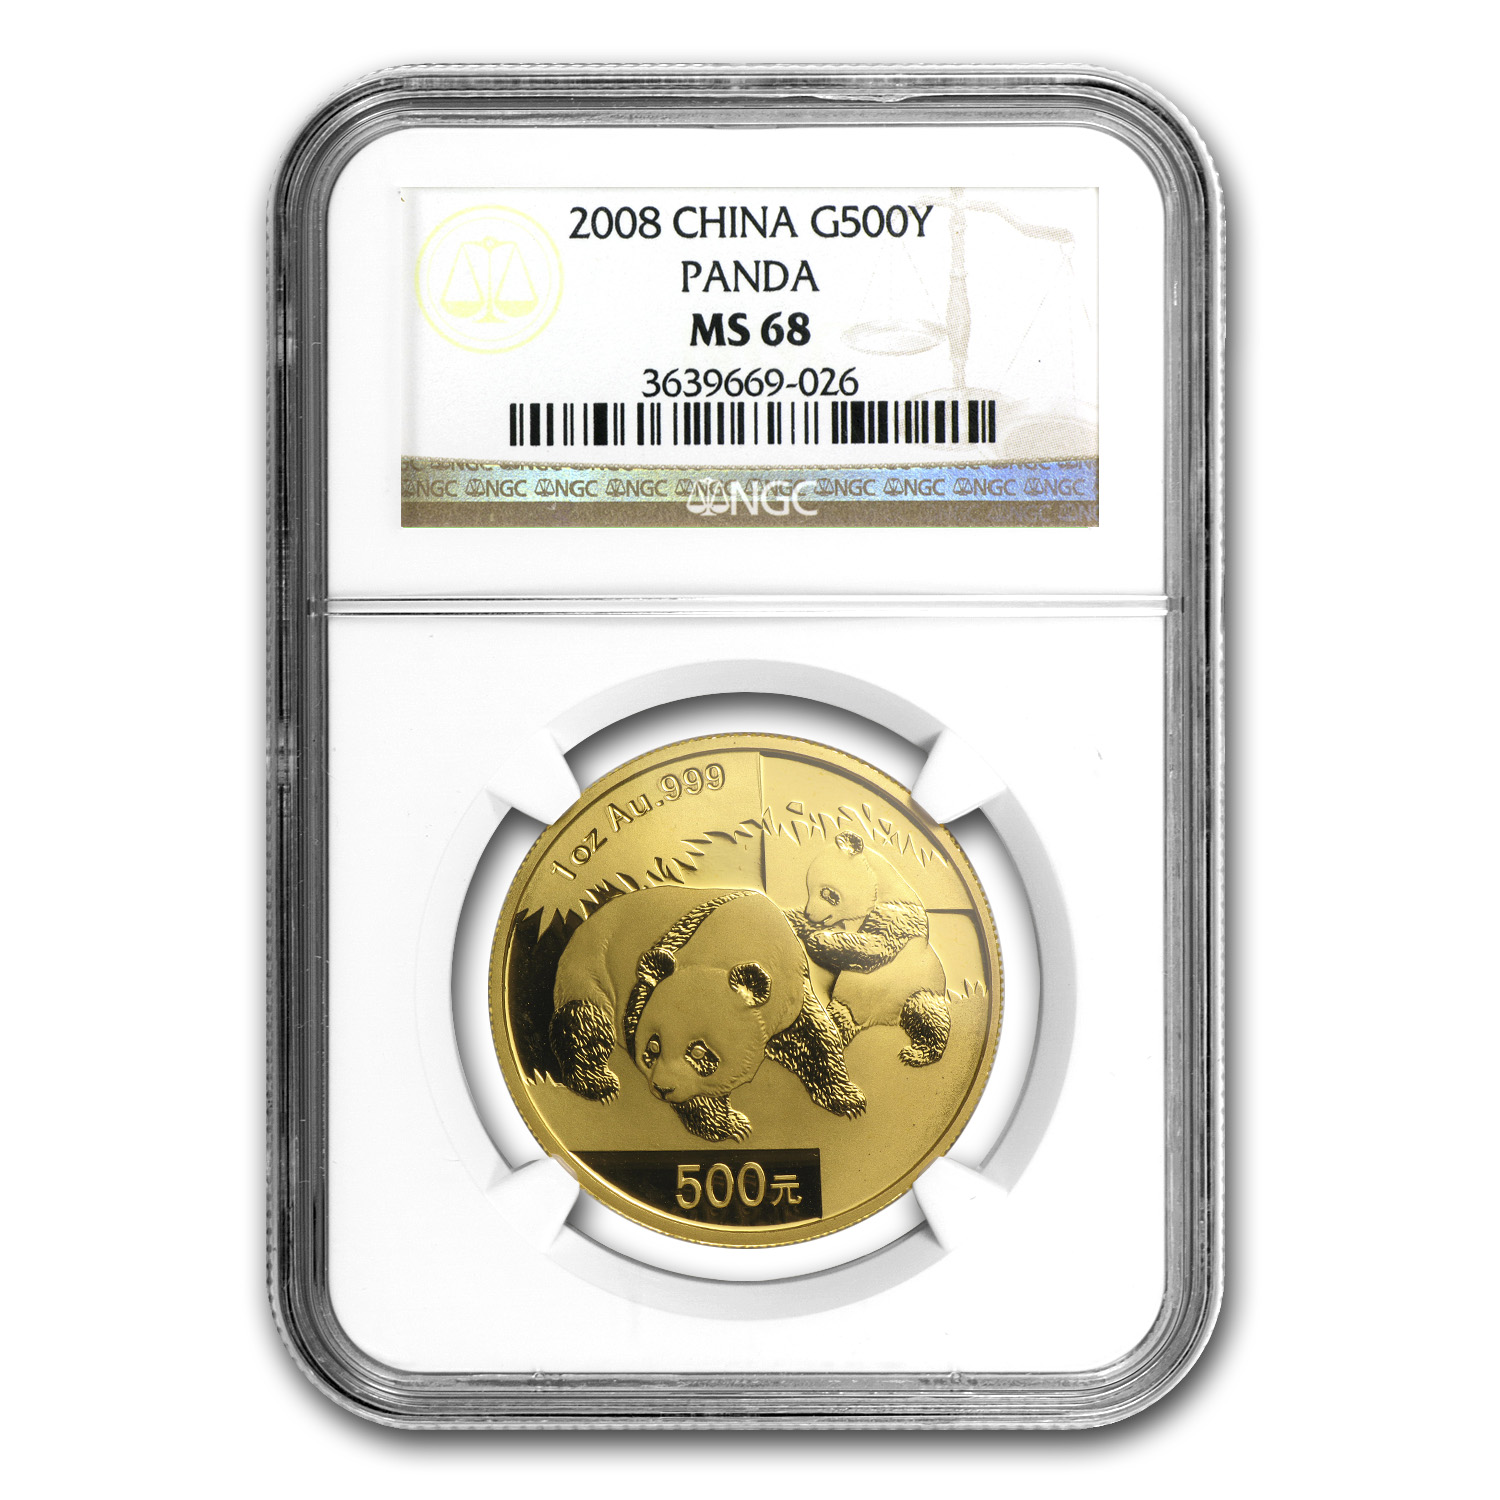 2008 China 1 oz Gold Panda MS-68 NGC